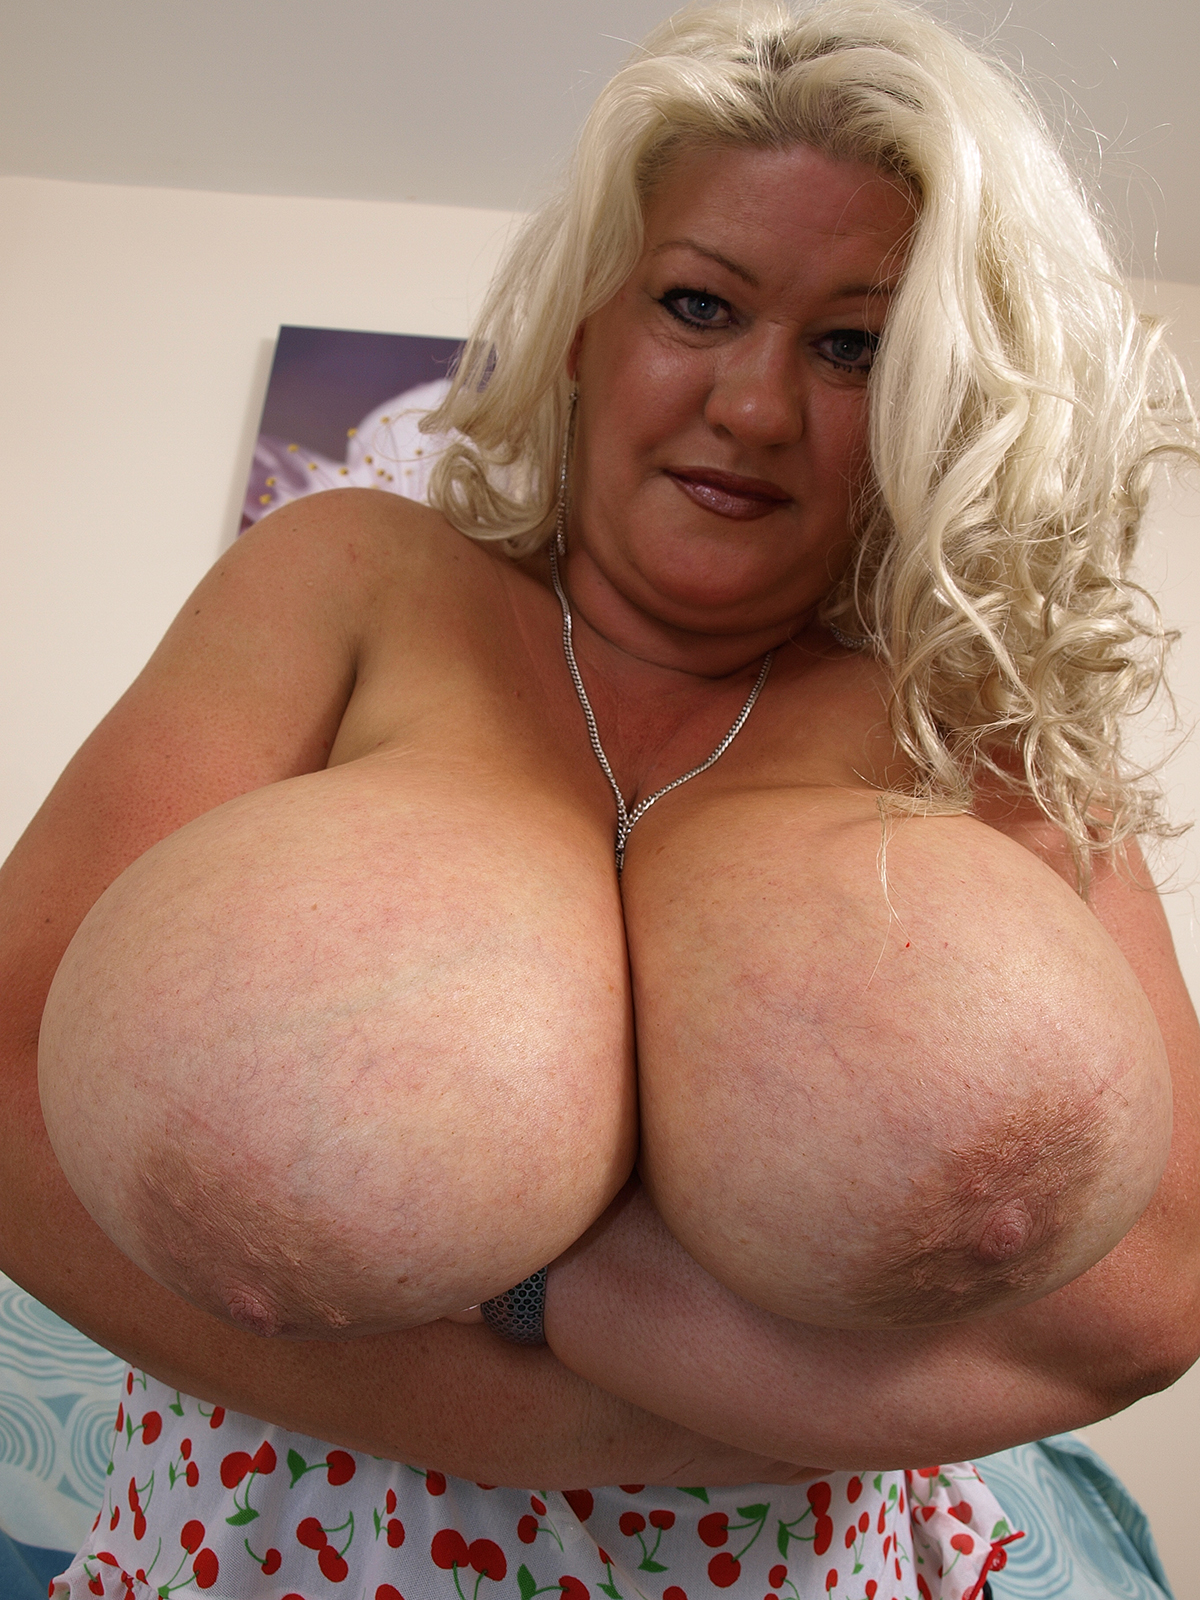 Uk escorts hh boobs